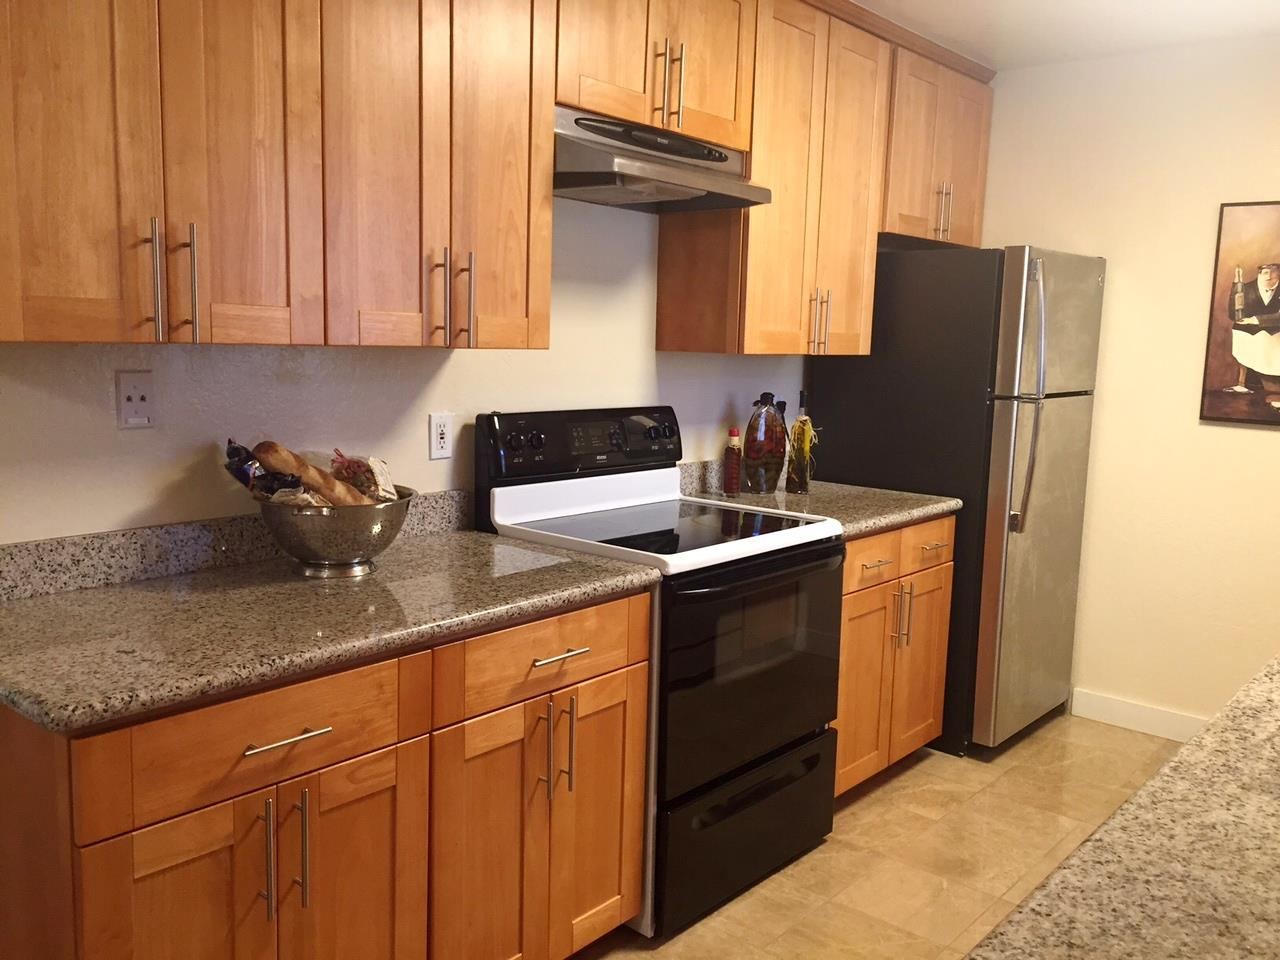 Additional photo for property listing at 636 Marcie Circle  South San Francisco, Kalifornien 94080 Vereinigte Staaten